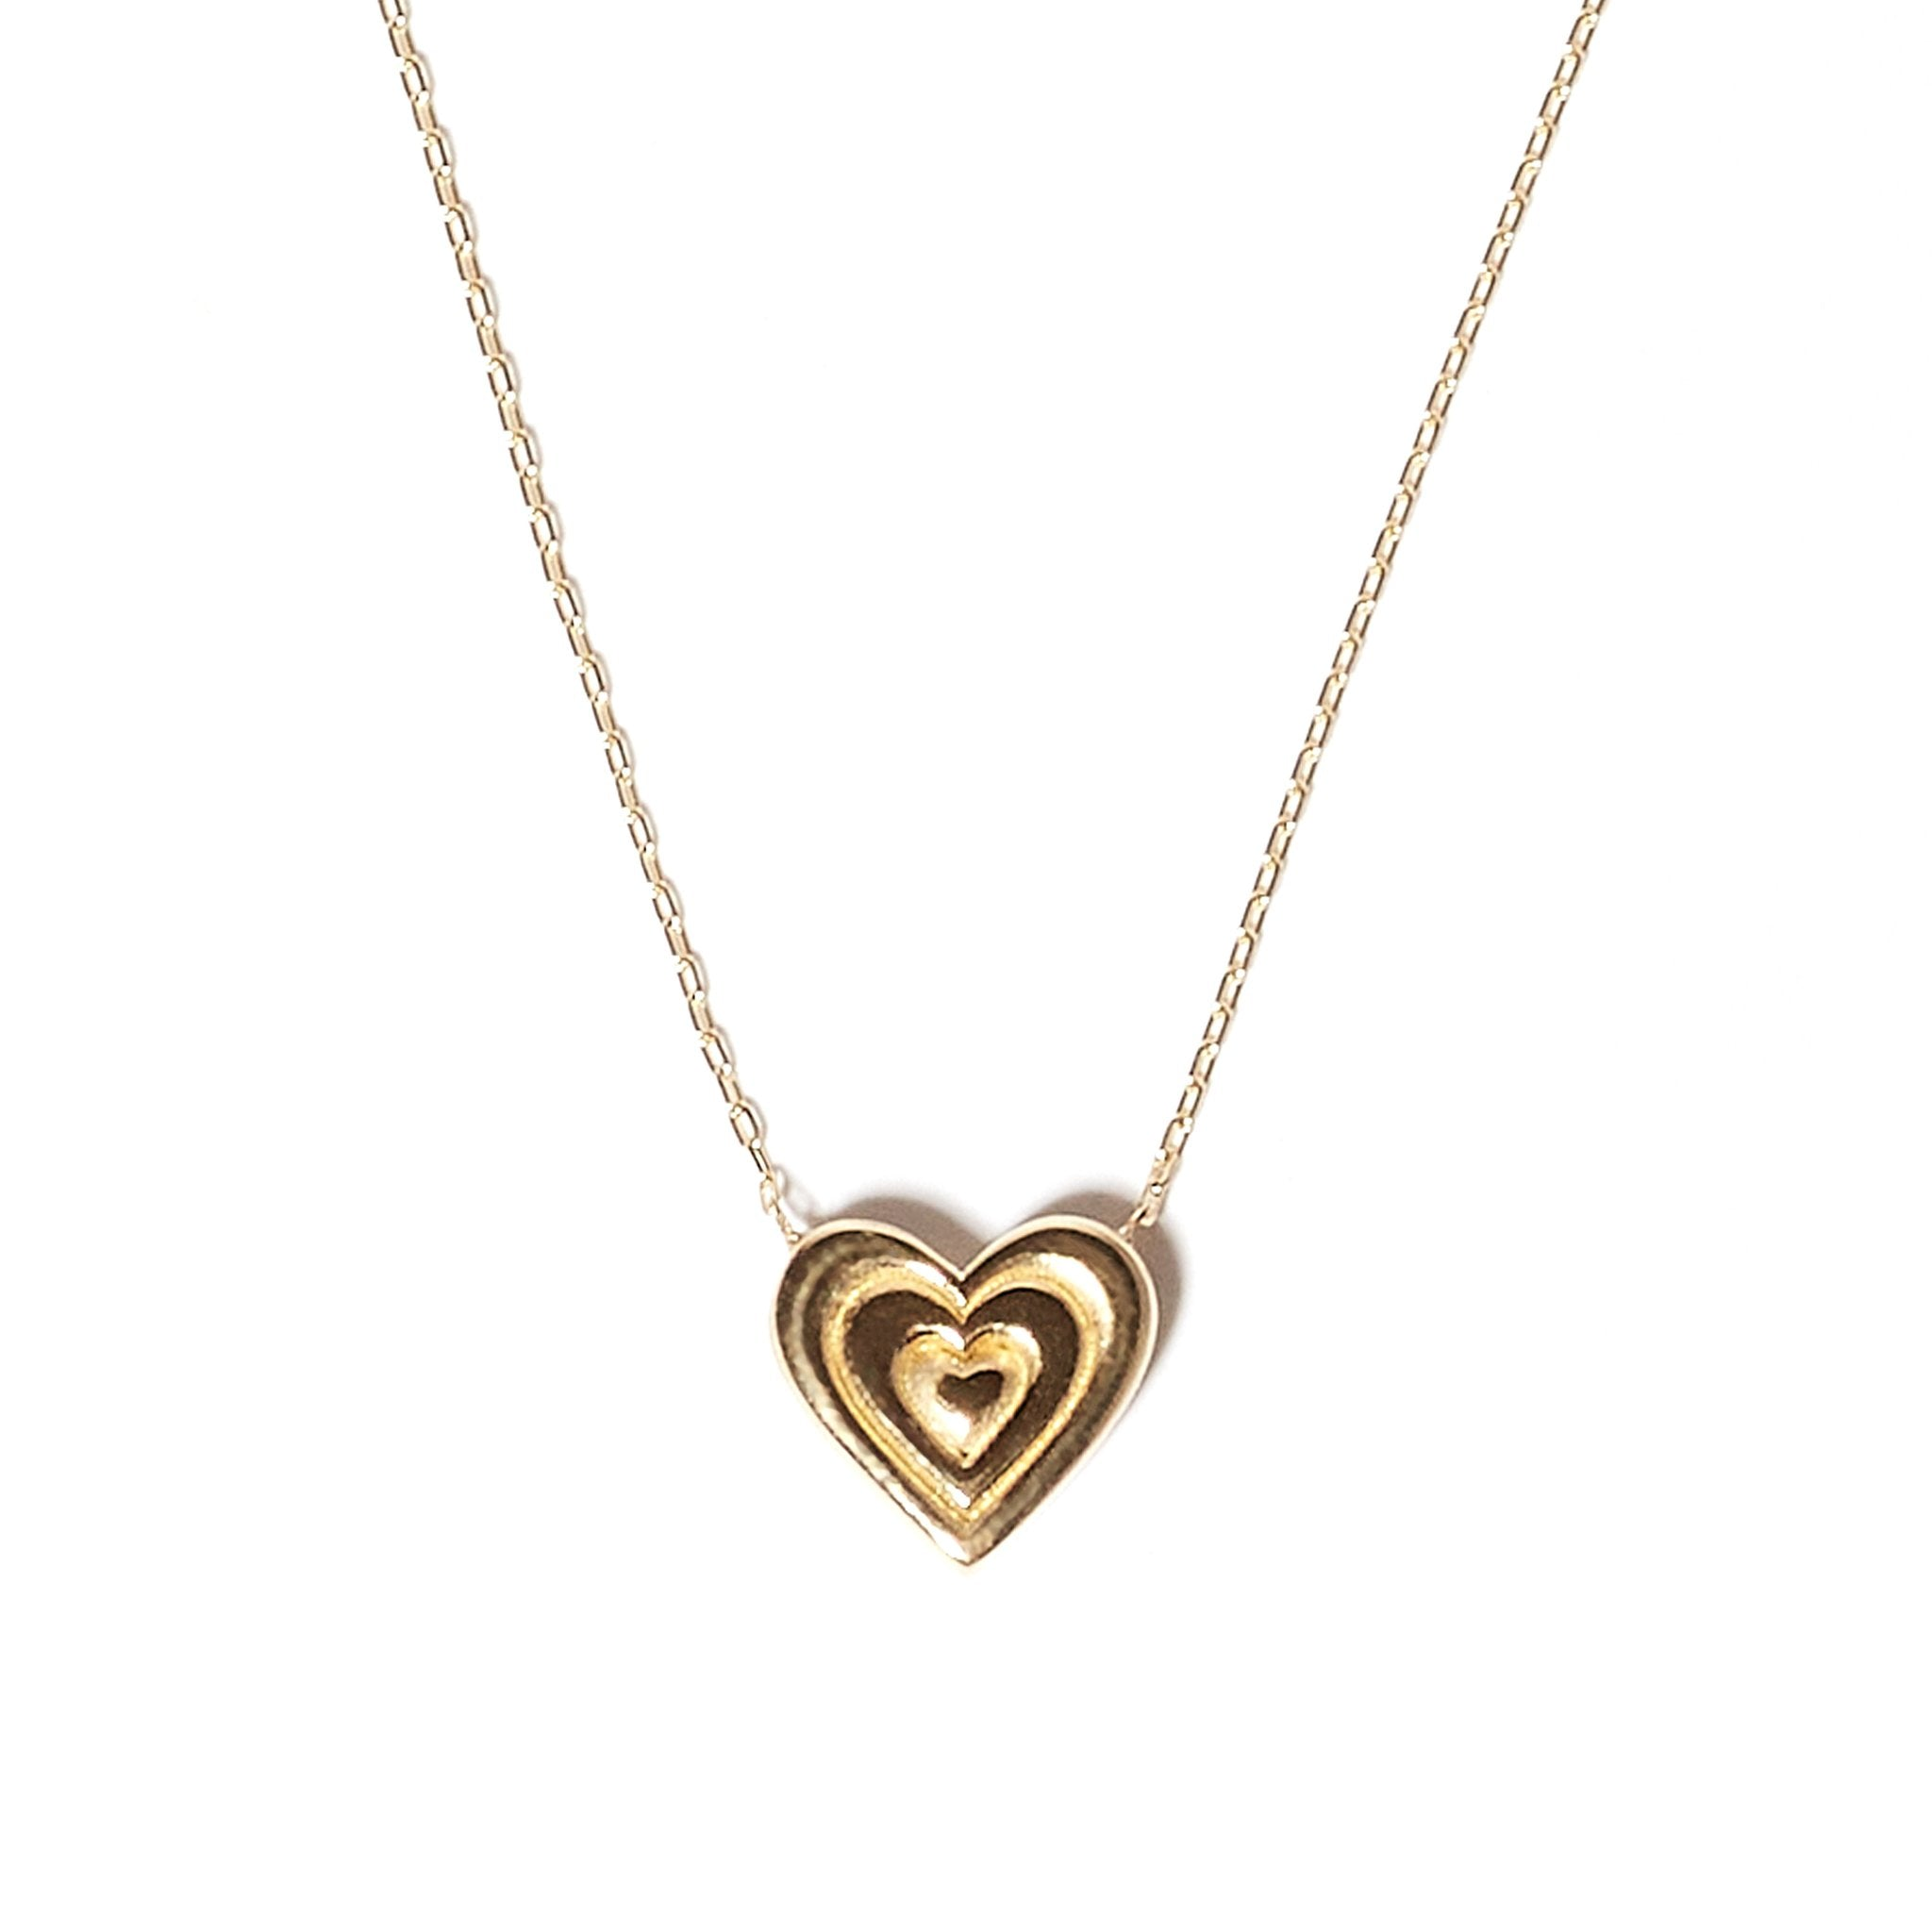 Mini JuJu Heart Charm Necklace